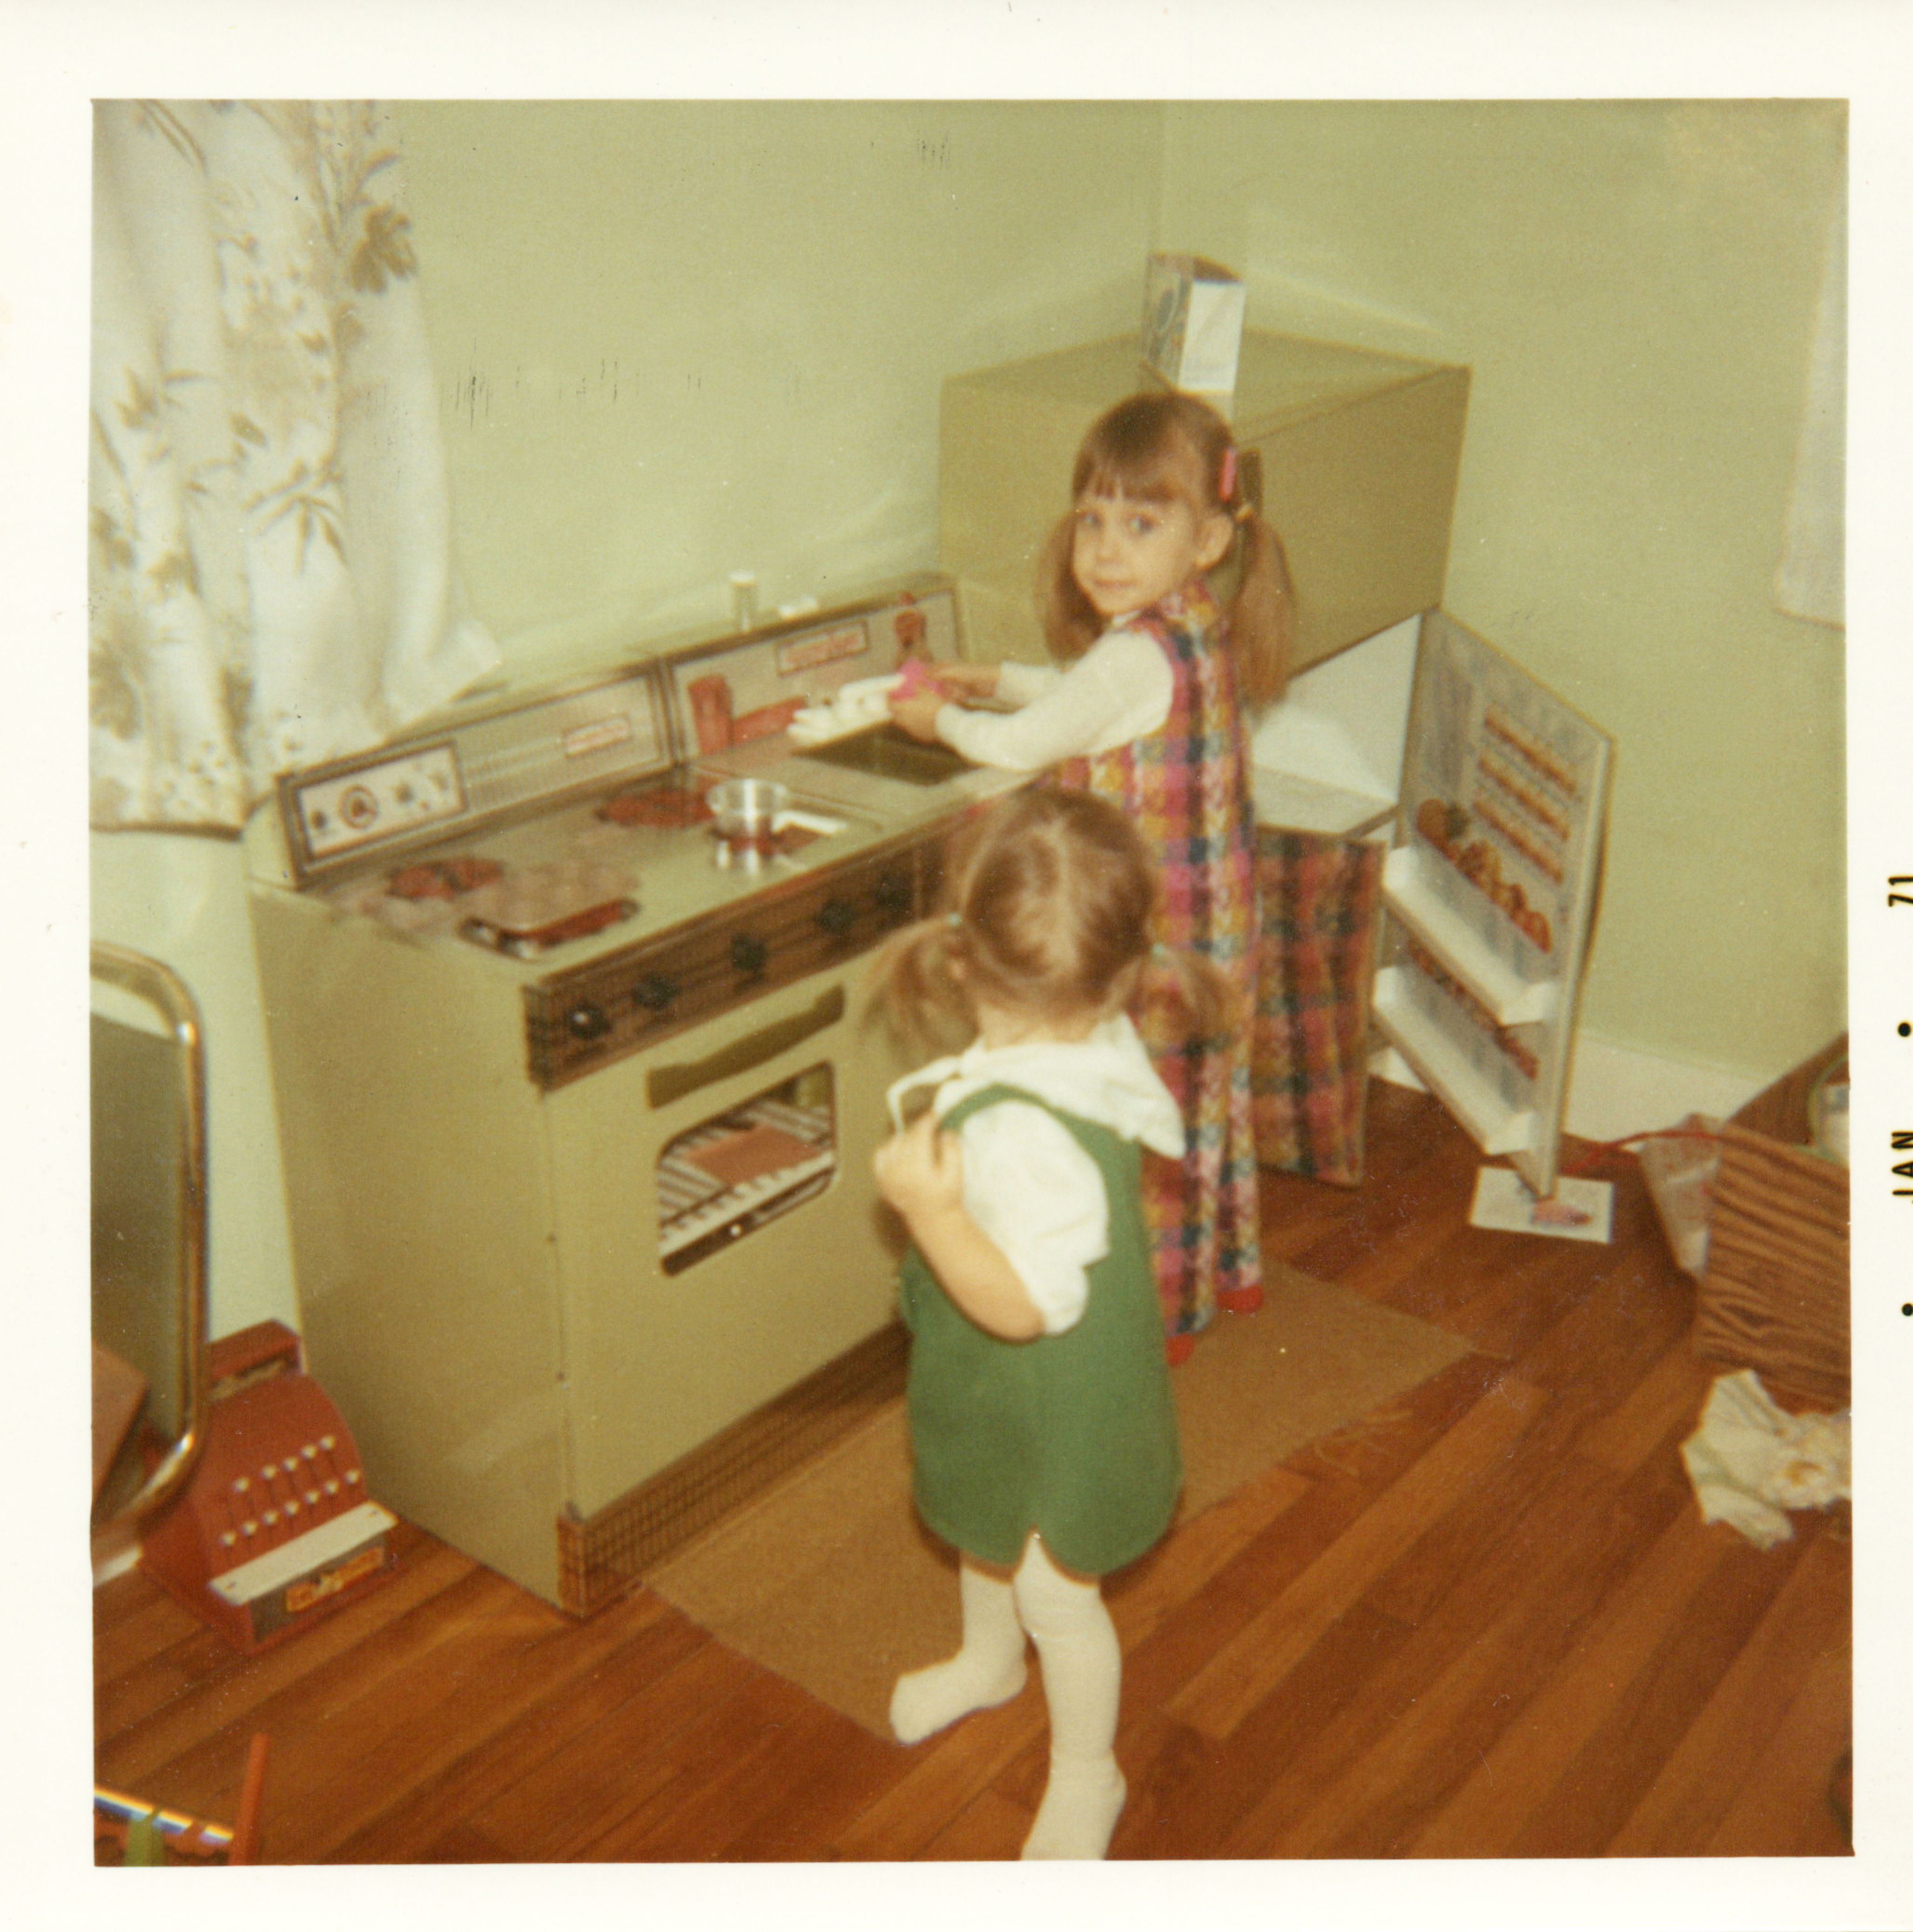 A photo of Two young girls pretending to be moms in a play kitchen